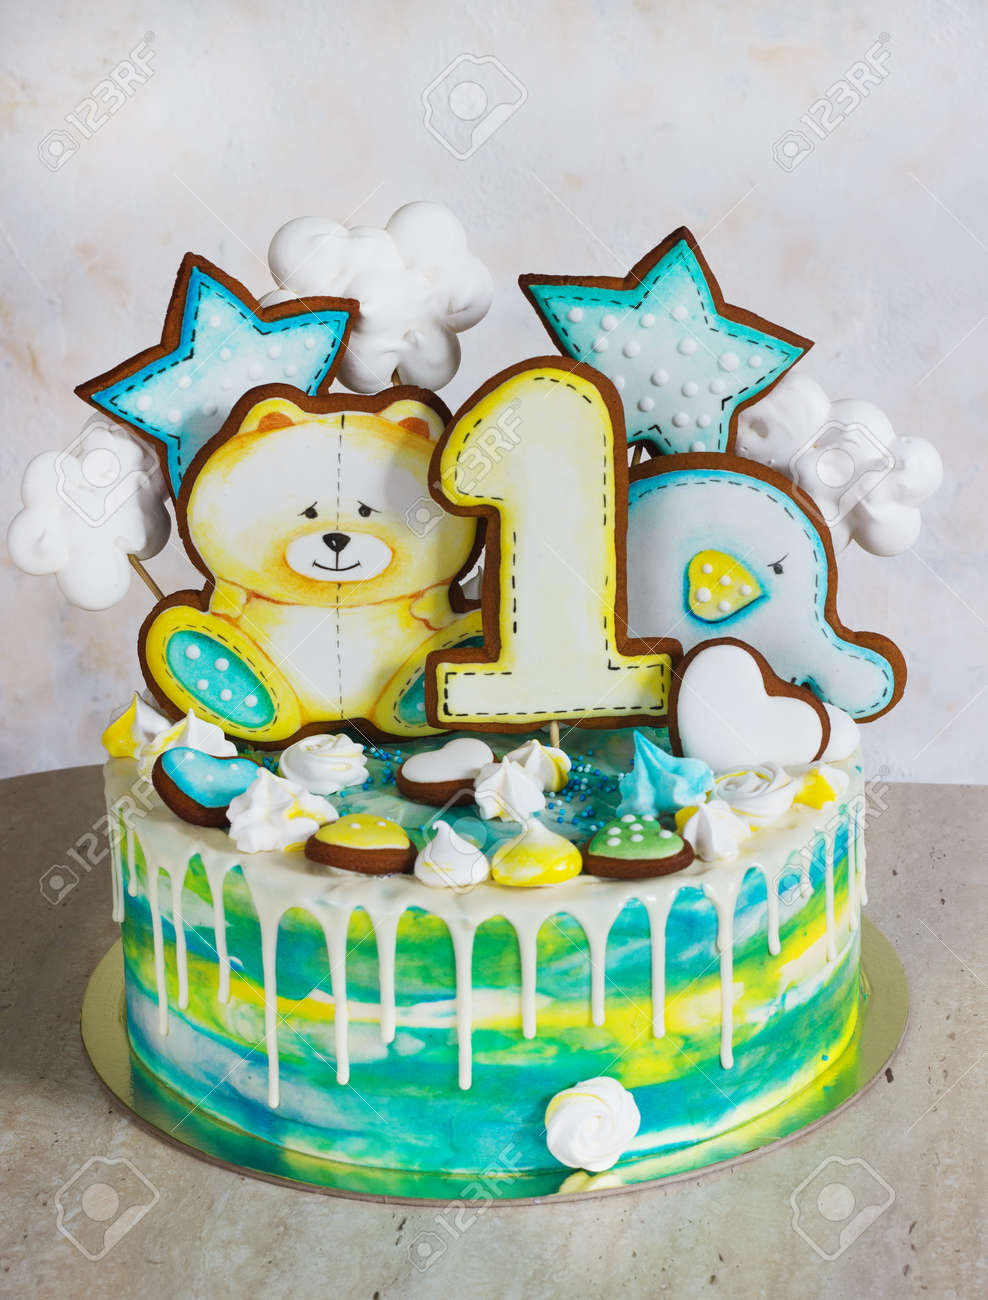 Modern Bright Childrens Cake With Gingerbread Cookies For One